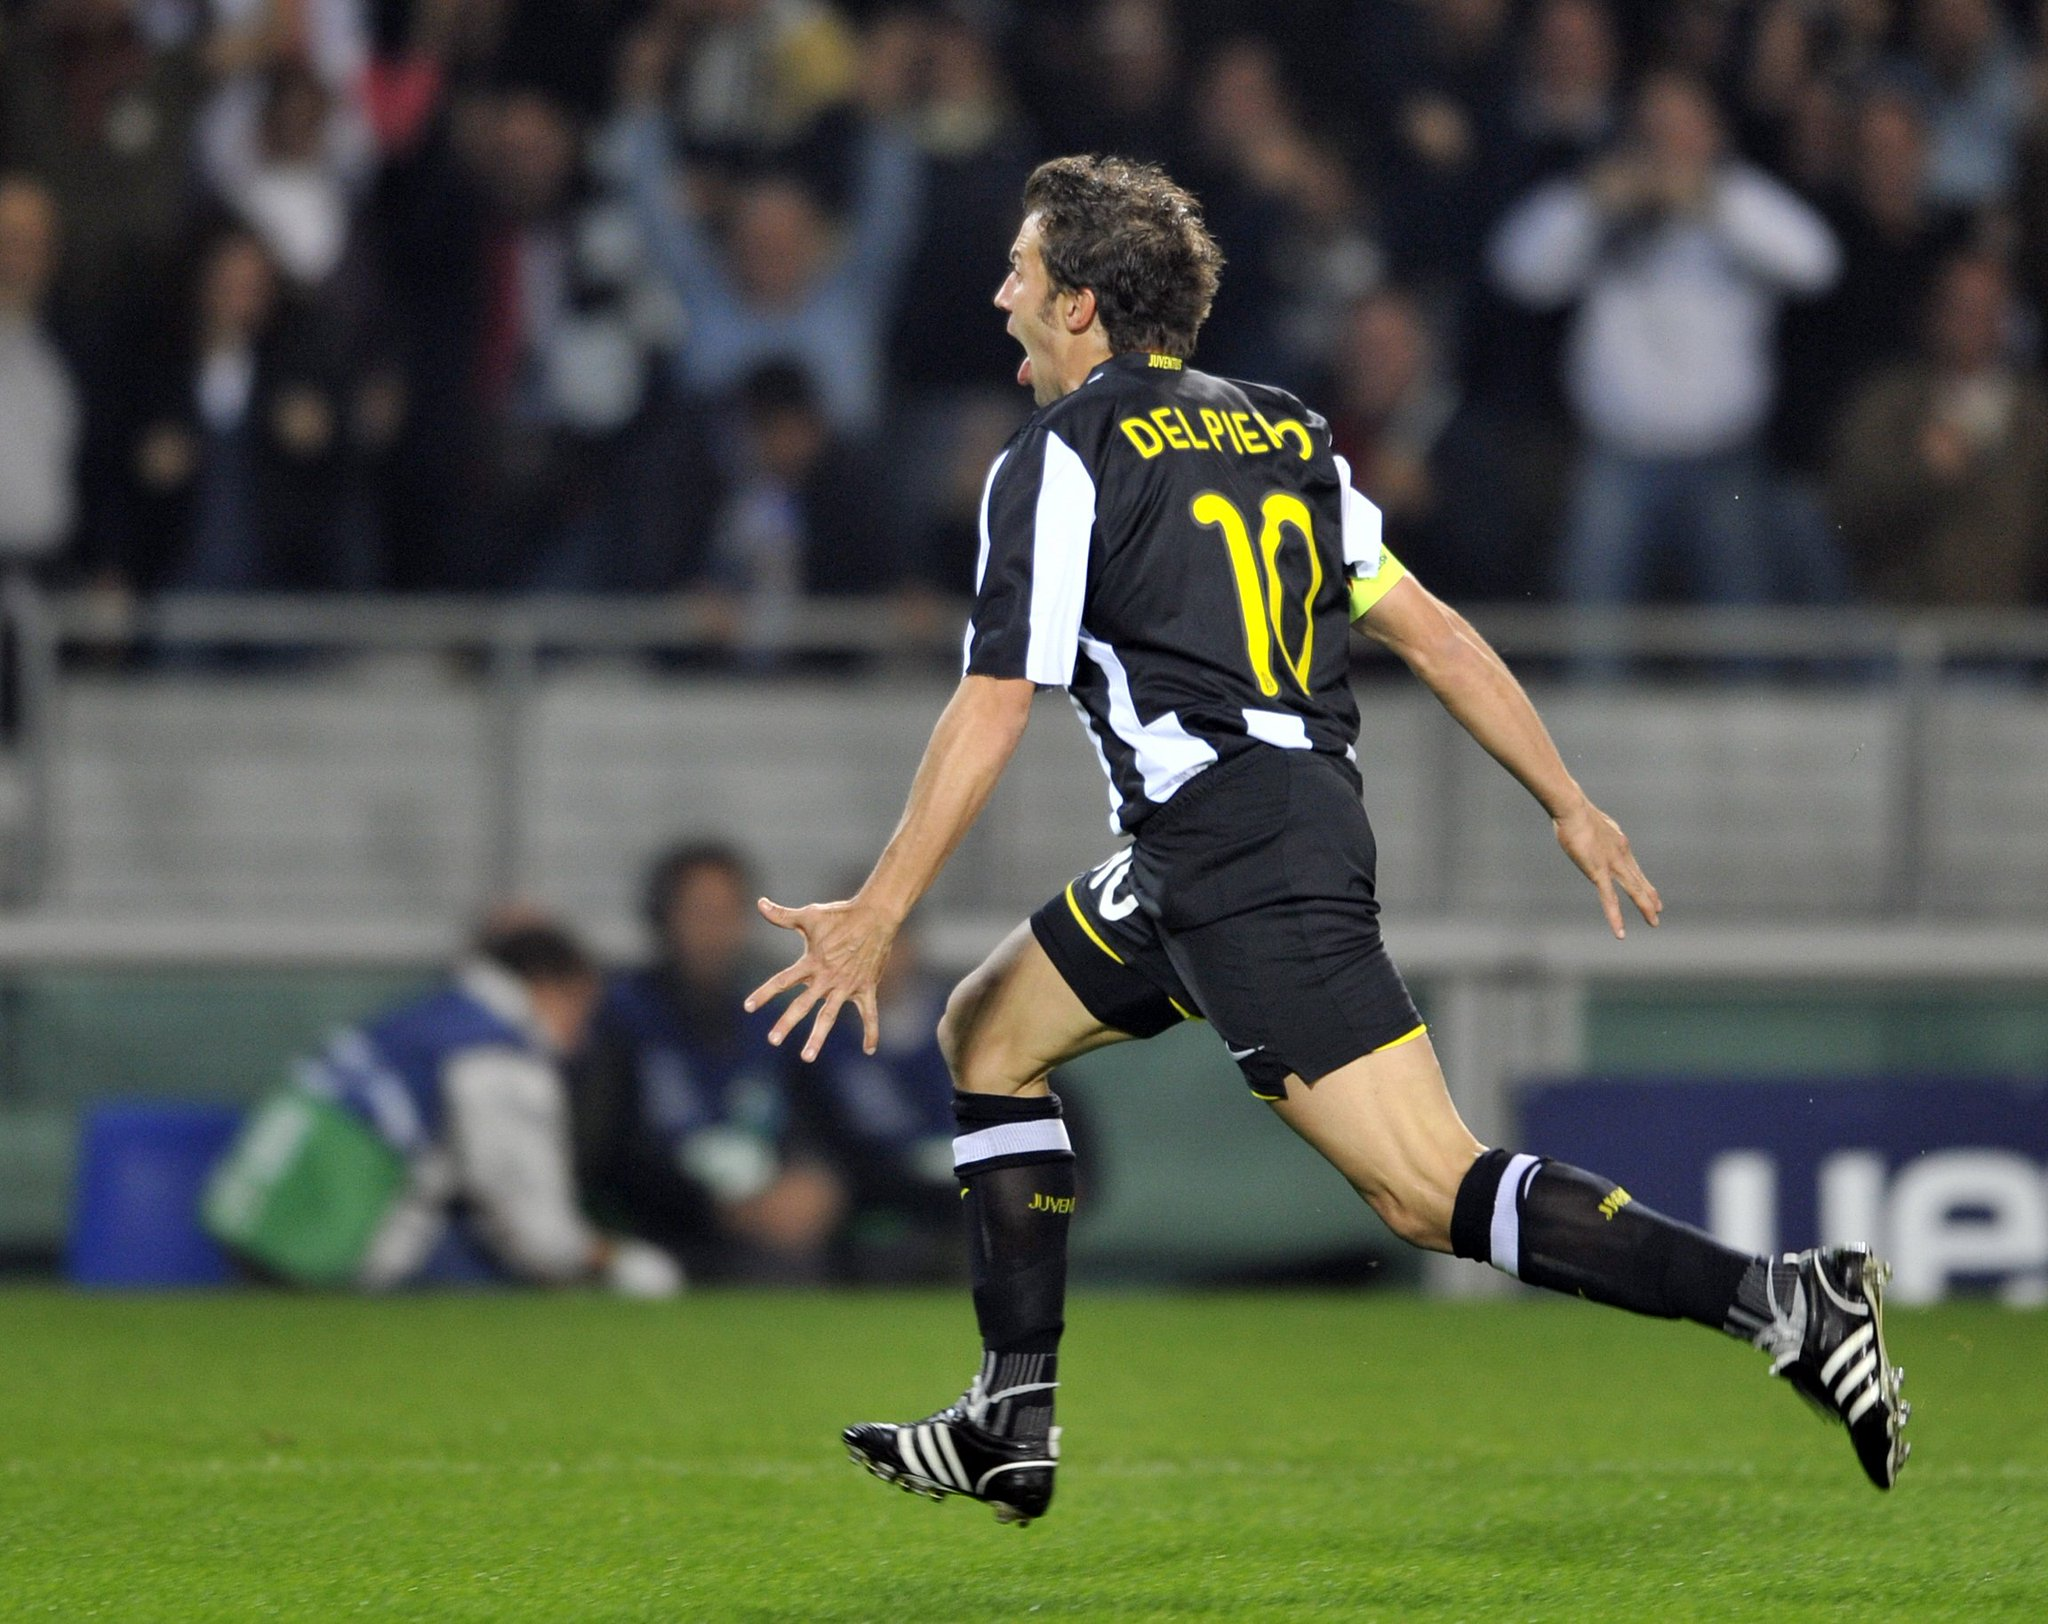 Alessandro Del Piero + #UCL = 💪  #ThrowbackThursday #TBT https://t.co/UzcLWZrzJS